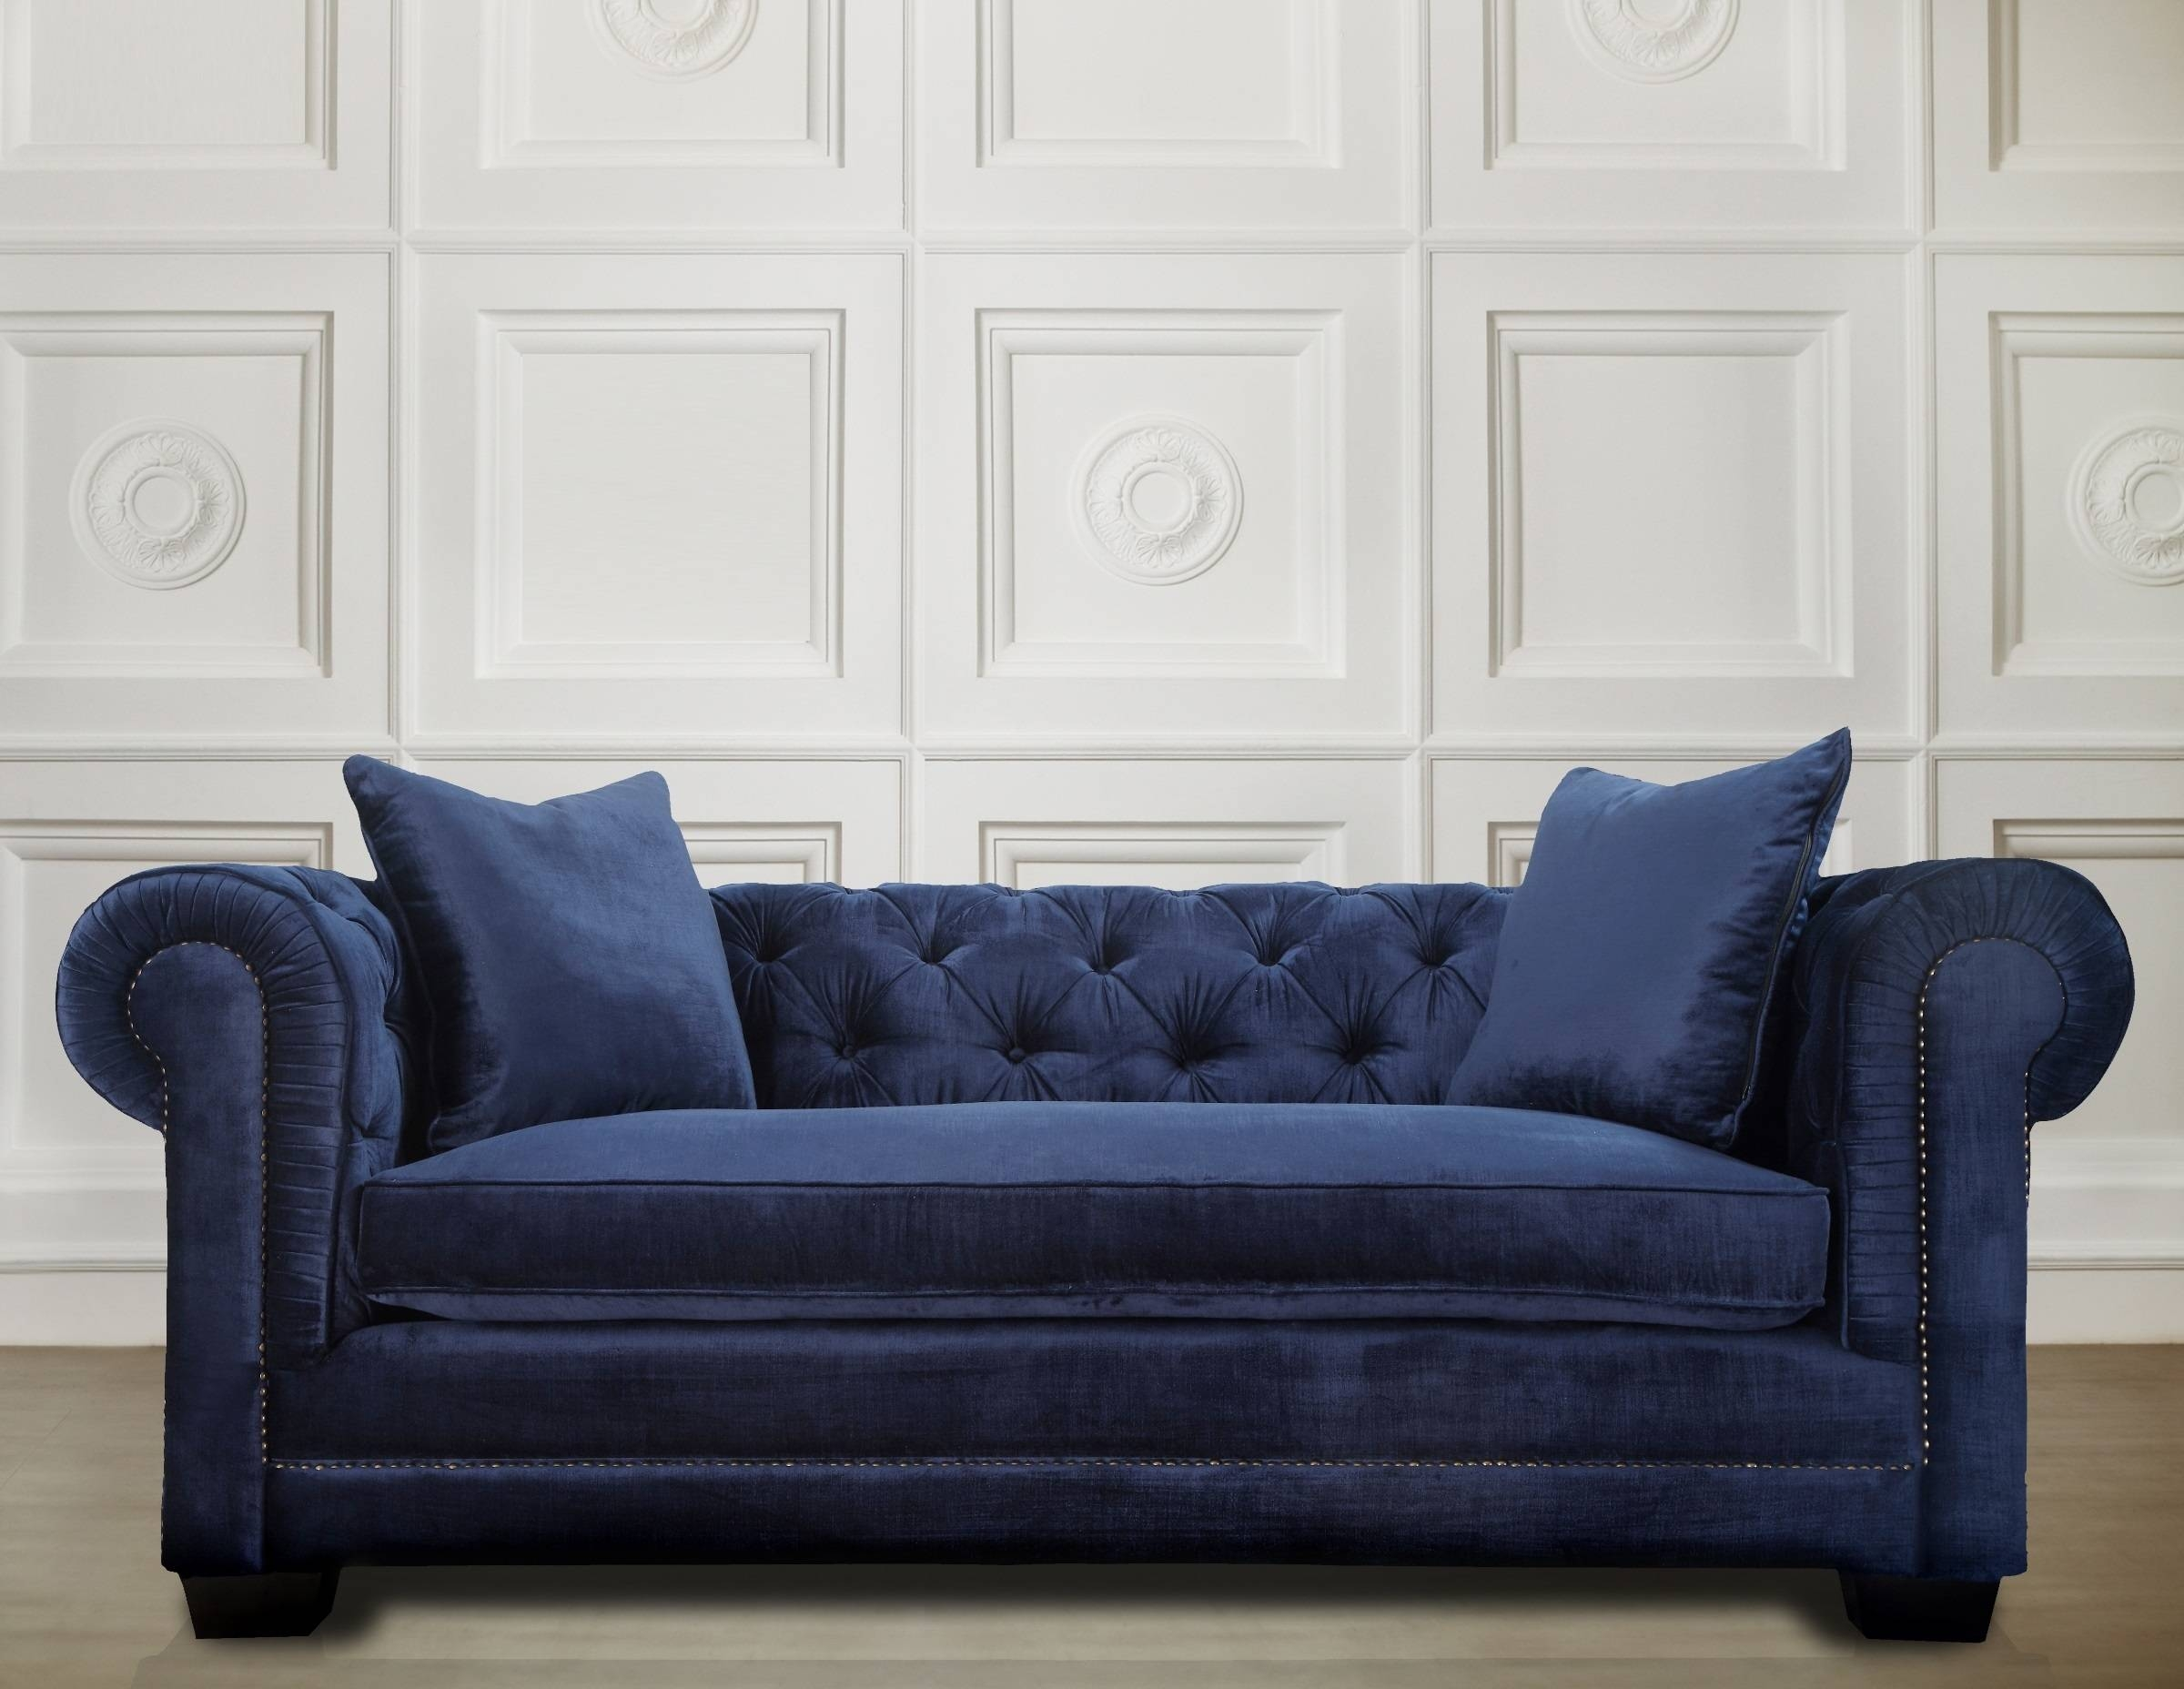 Blue Velvet Tufted Couch | Tehranmix Decoration with Blue Tufted Sofas (Image 8 of 30)